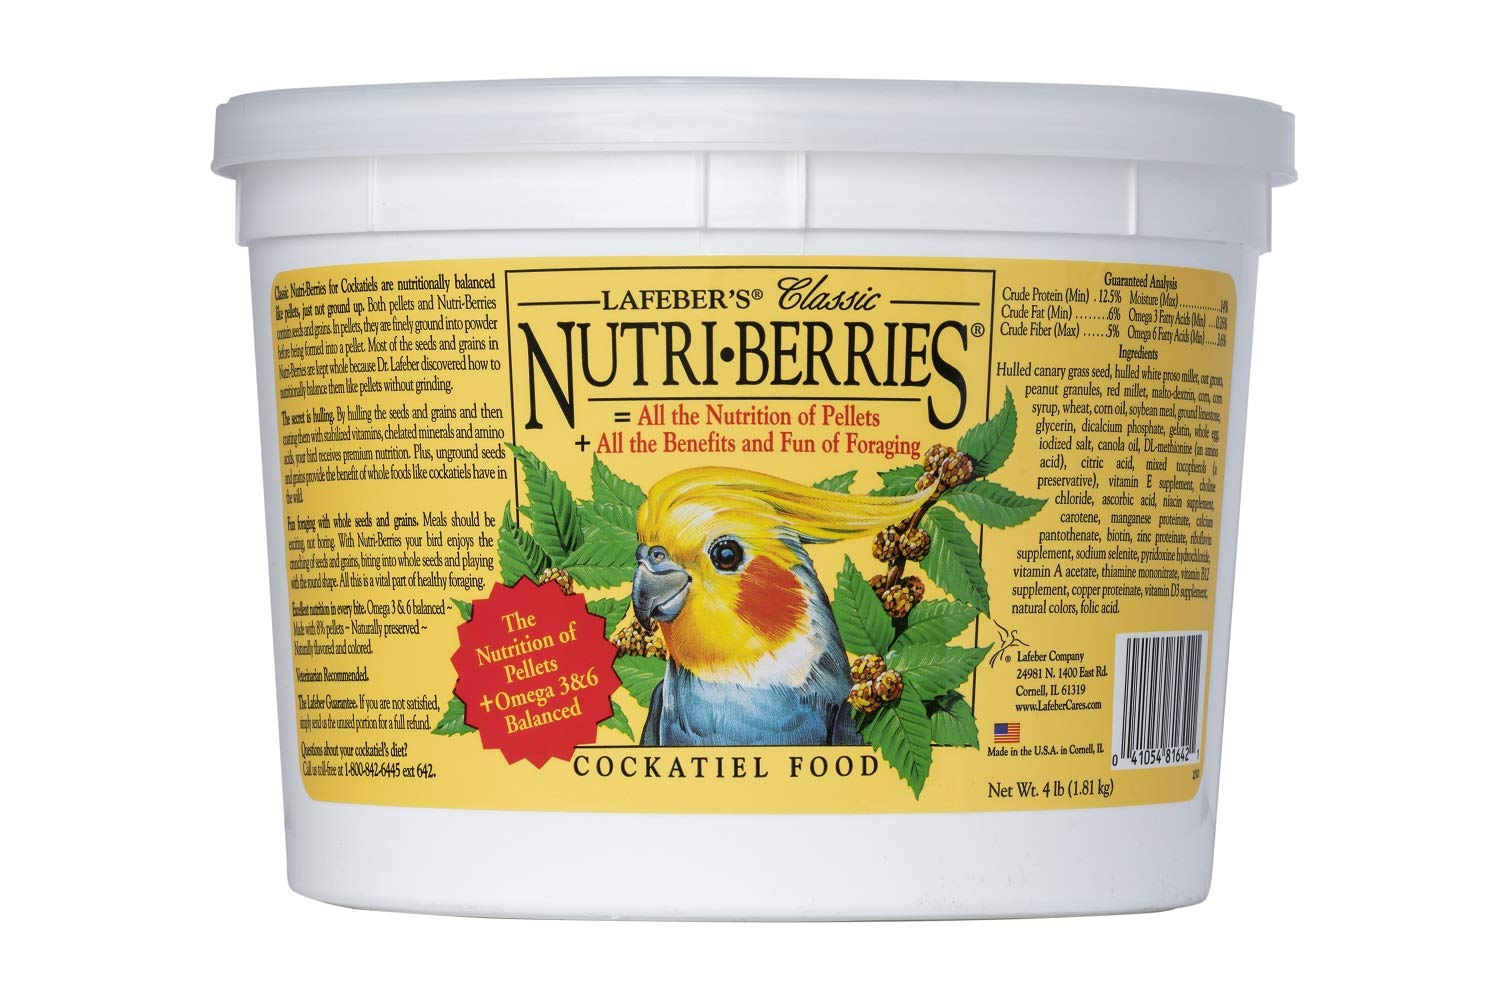 LAFEBER'S Classic Nutri-Berries Pet Bird Food, Made with Non-GMO and Human-Grade Ingredients, for Cockatiels, 4 lbs by LAFEBER'S